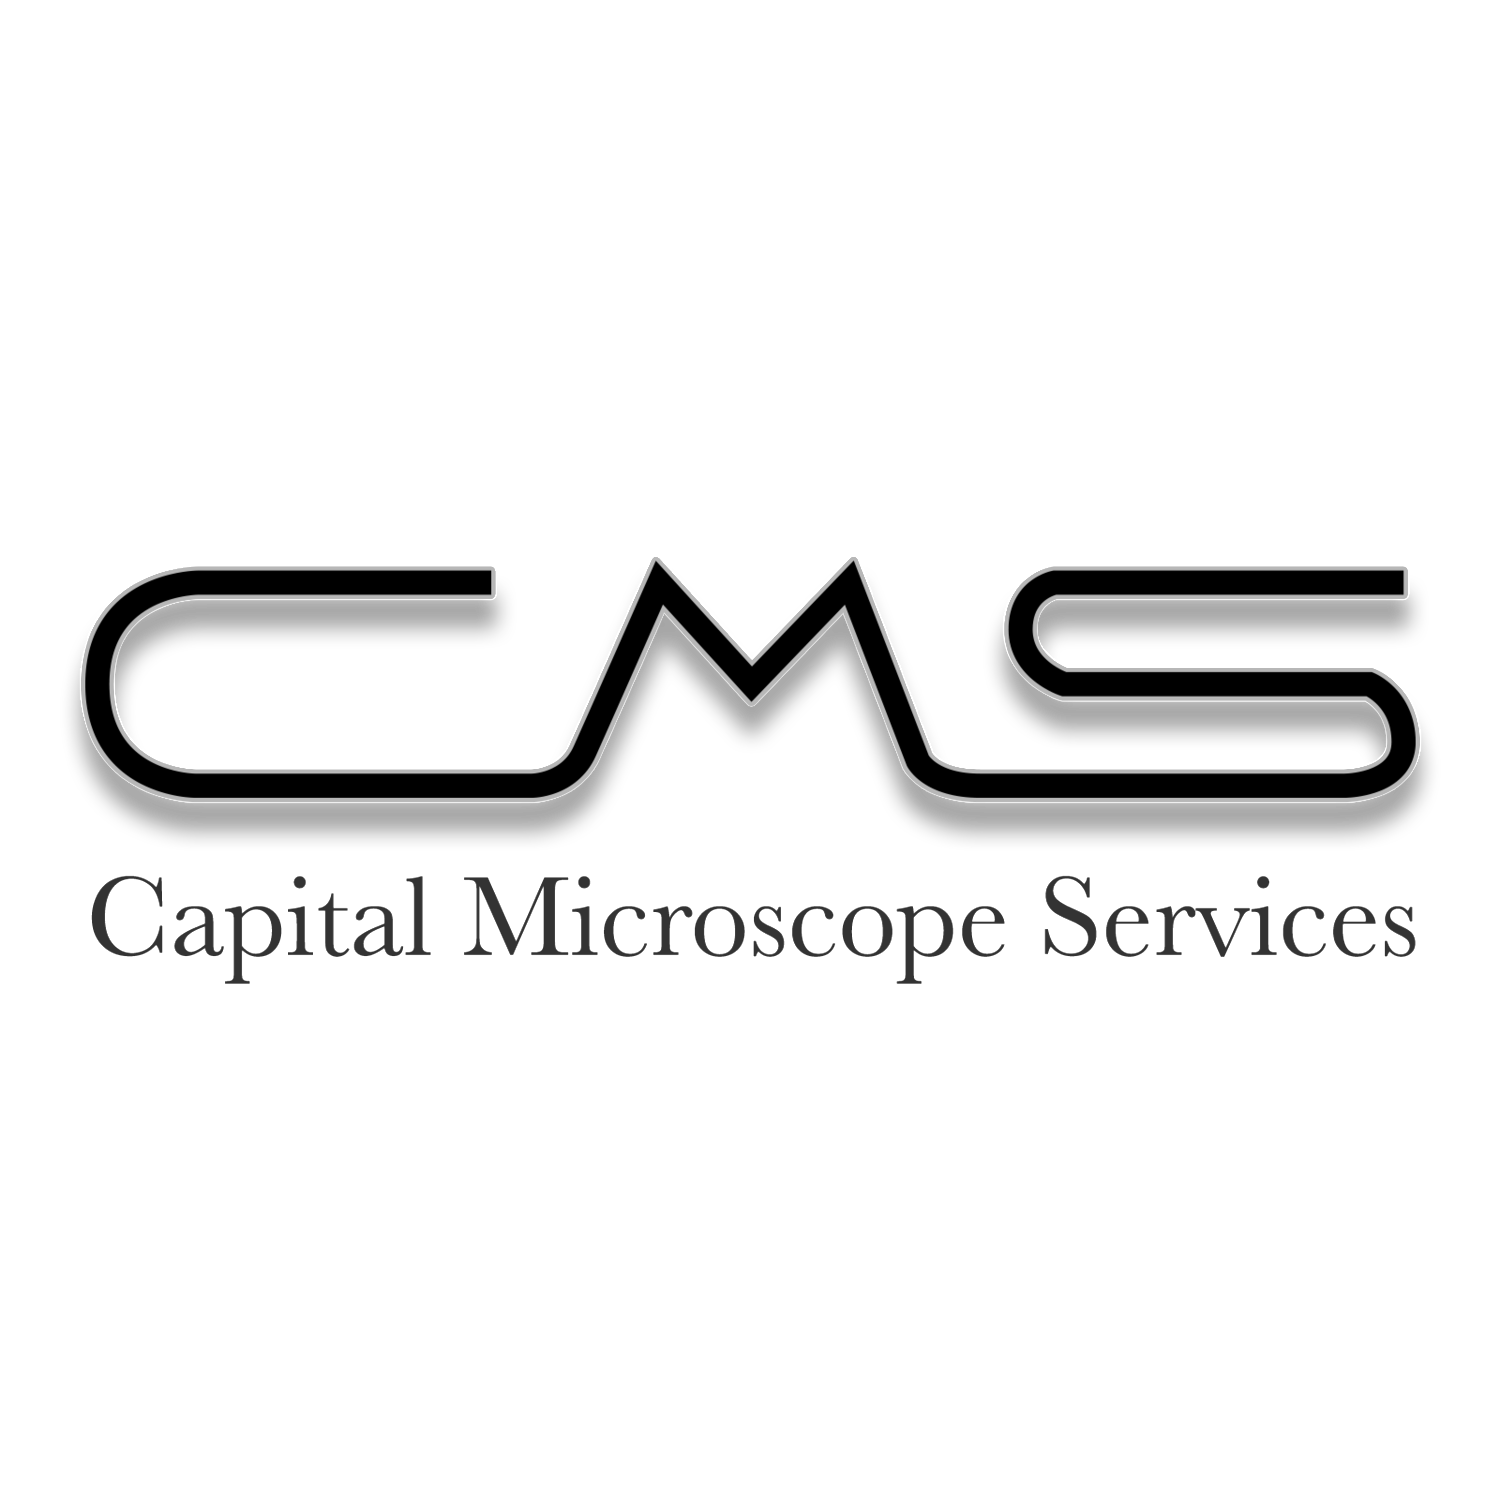 Capital Microscope Services